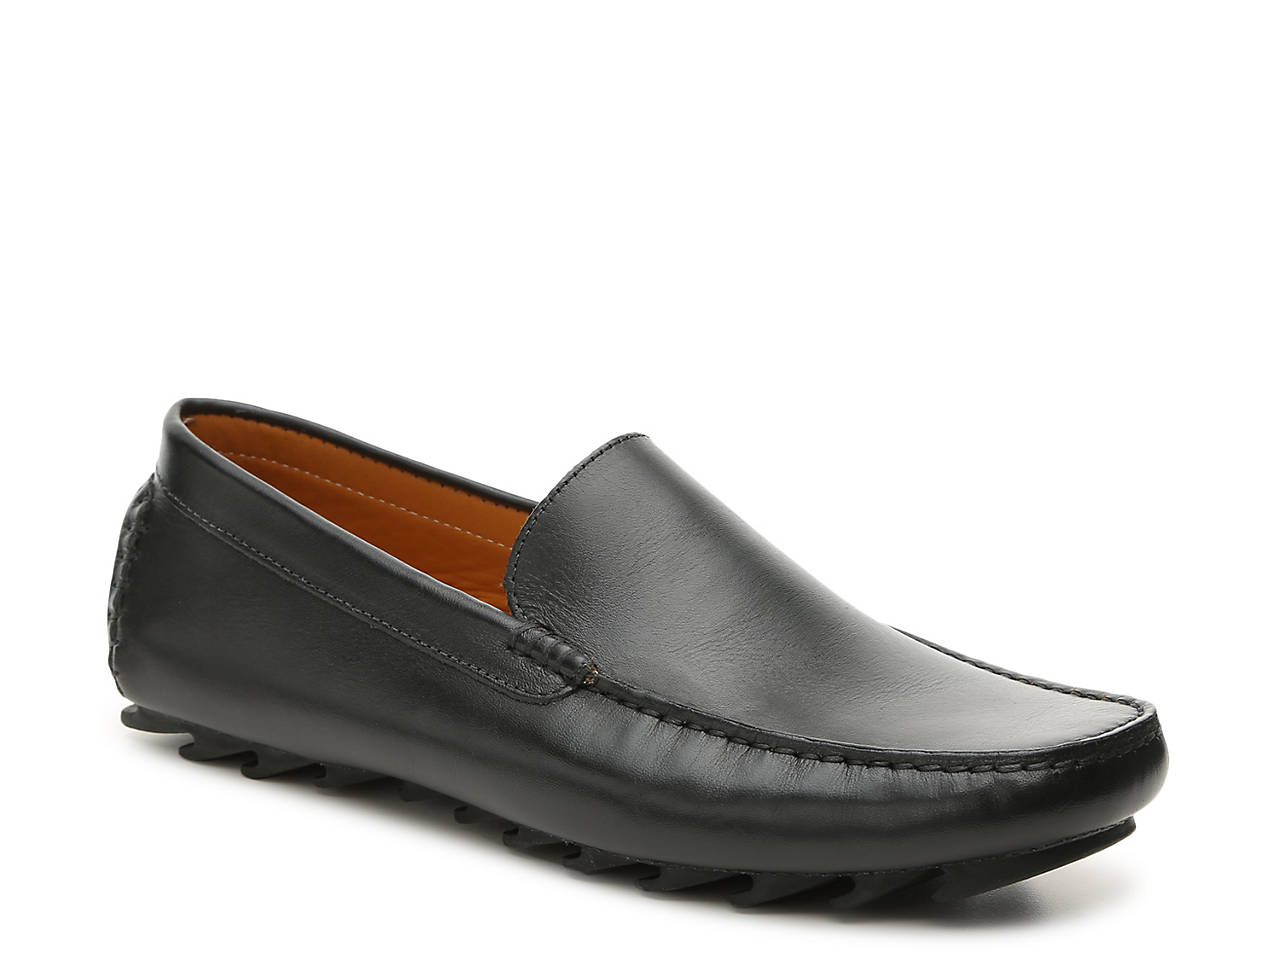 9838 Loafer Dsw Mercanti Fiorentini Shoes